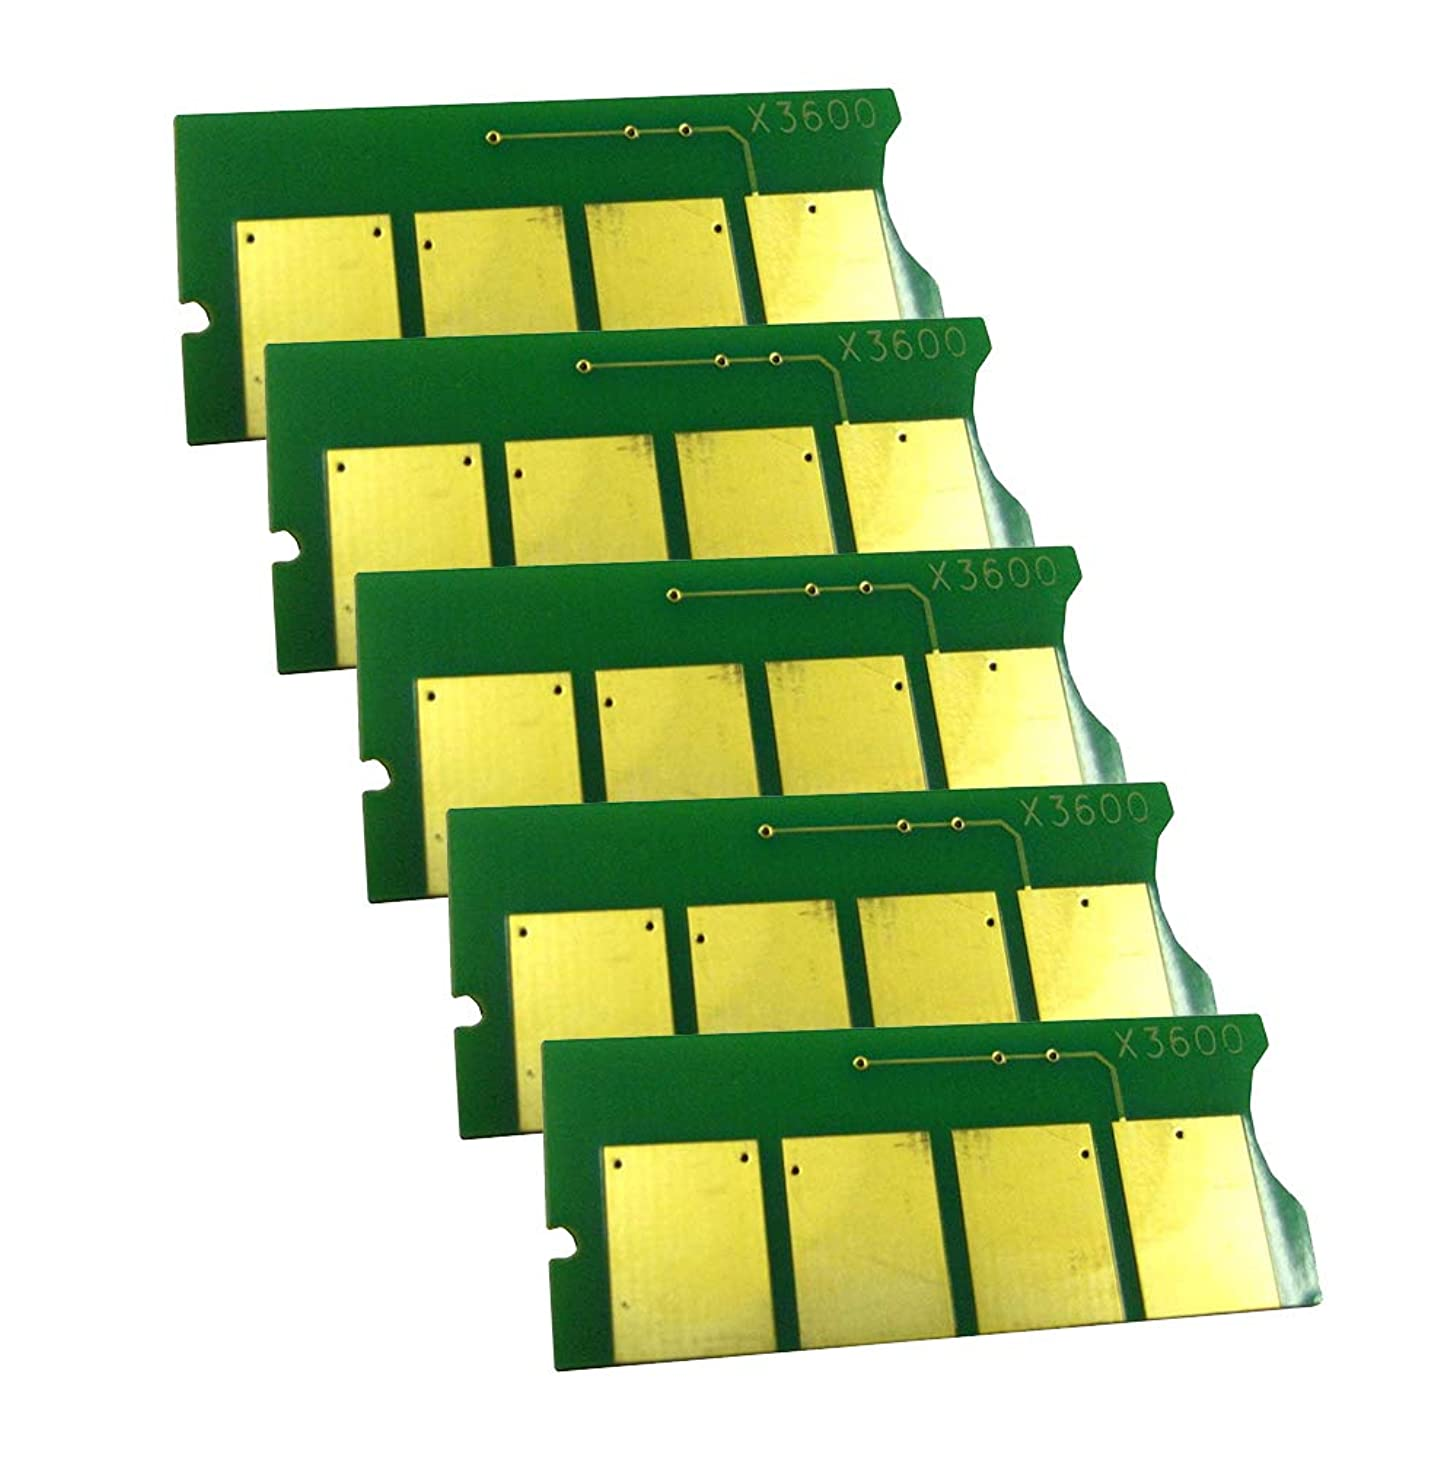 AAA Compatible Toner Reset Chip Replacement for Xerox Phaser 3600 (14,000 Pages) (106R1371) (5-Pack)